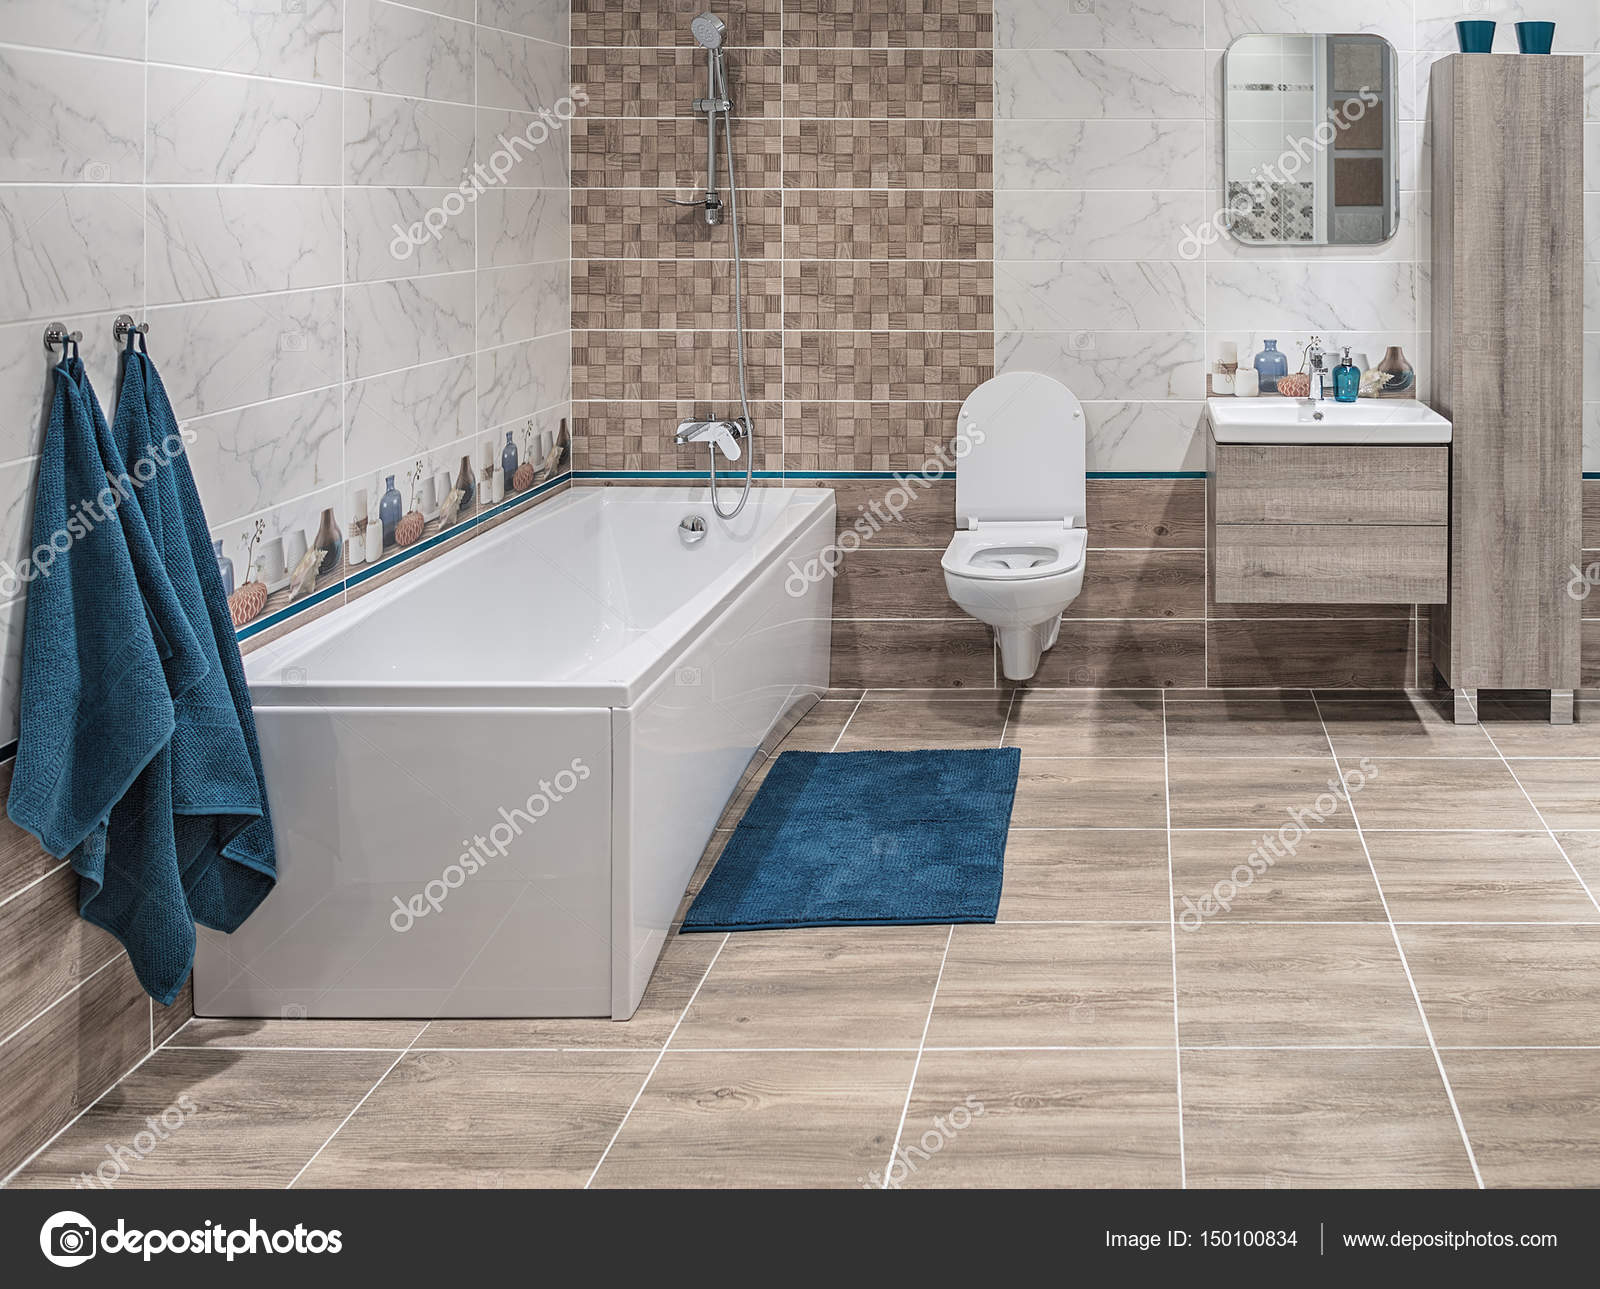 Large Bathroom In A Modern Style Straight Laconic Forms Natural Materials Wall And Flor Decoration With Tiles Stock Editorial Photo C Fotiy 150100834